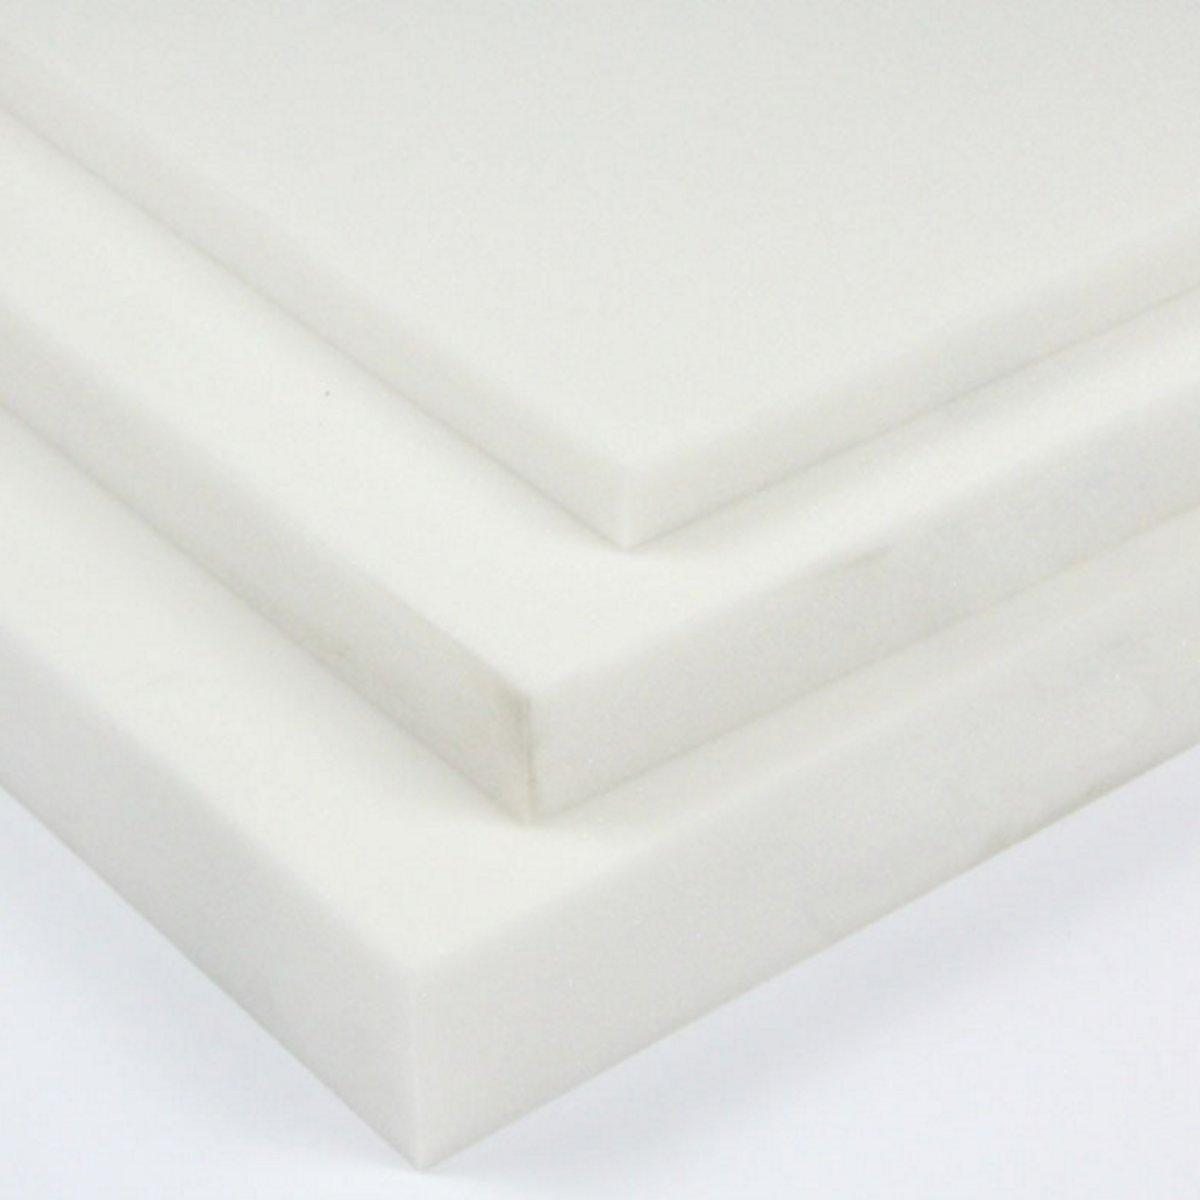 CUT TO SIZE Made to Measure Sizes in CM High-Density Upholstery Foam